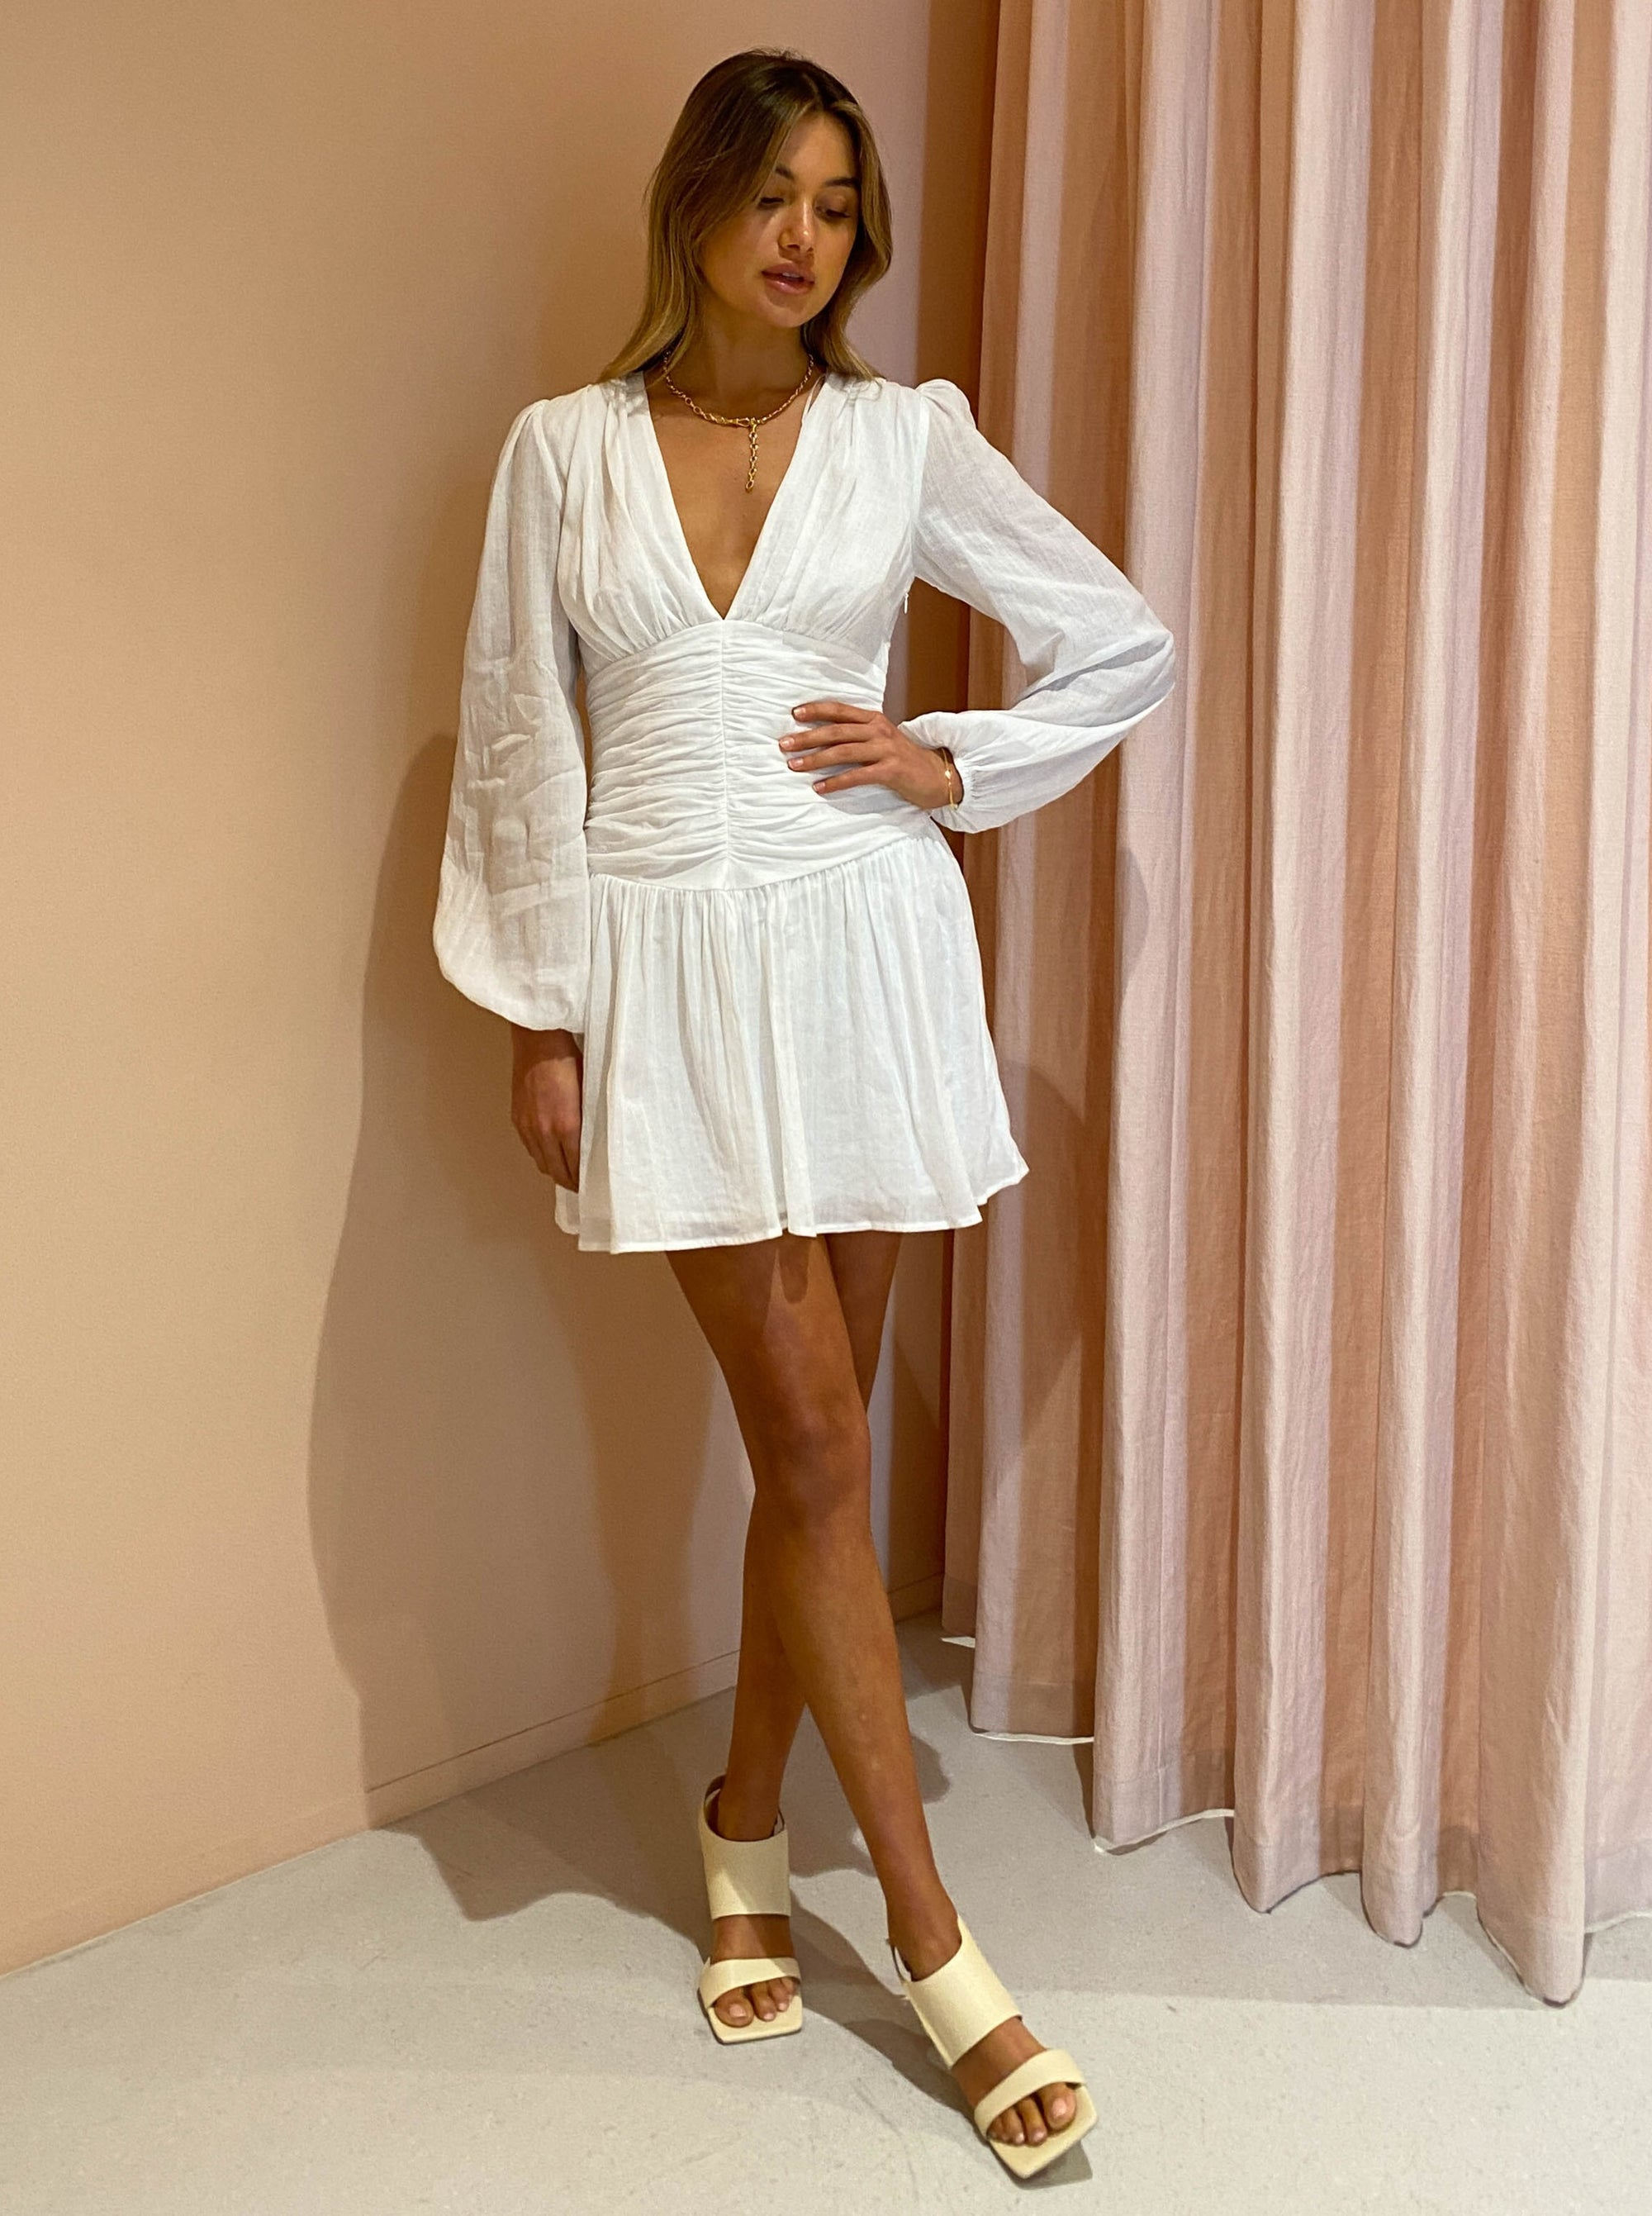 By Nicola Limoncello L /S Mini Dress in White